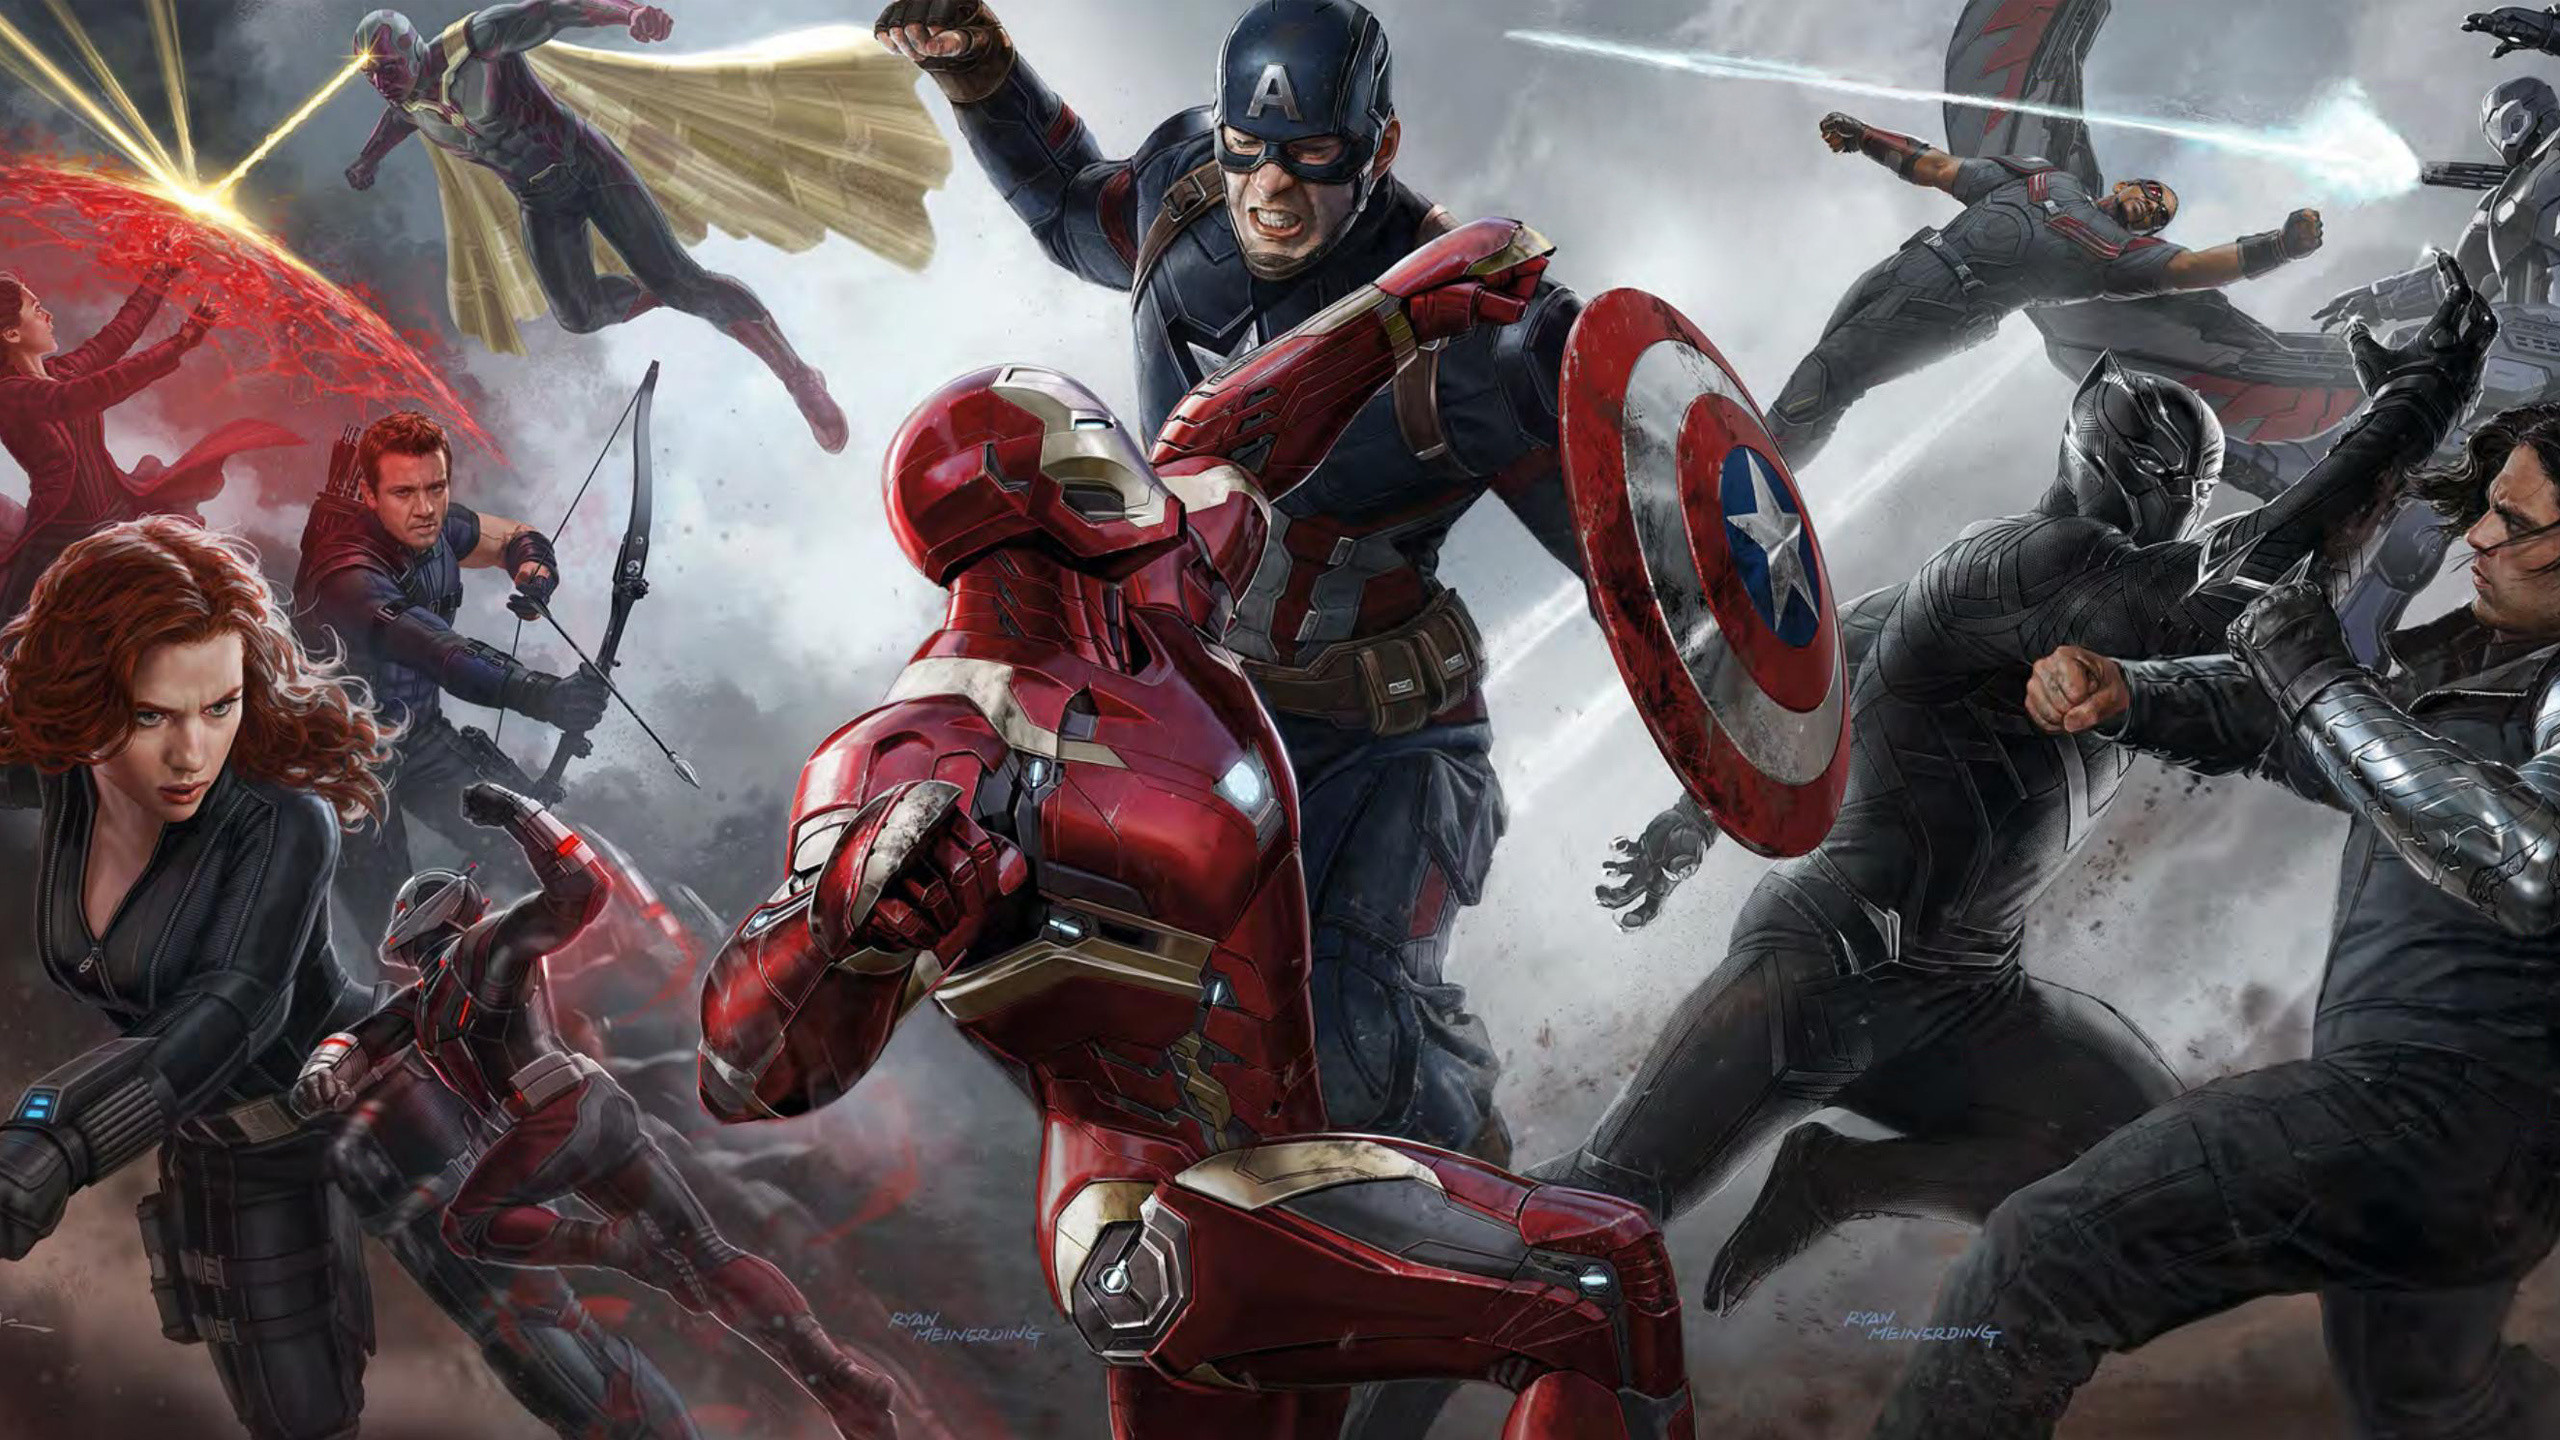 Hd Marvel Wallpapers For Desktop 58 Images